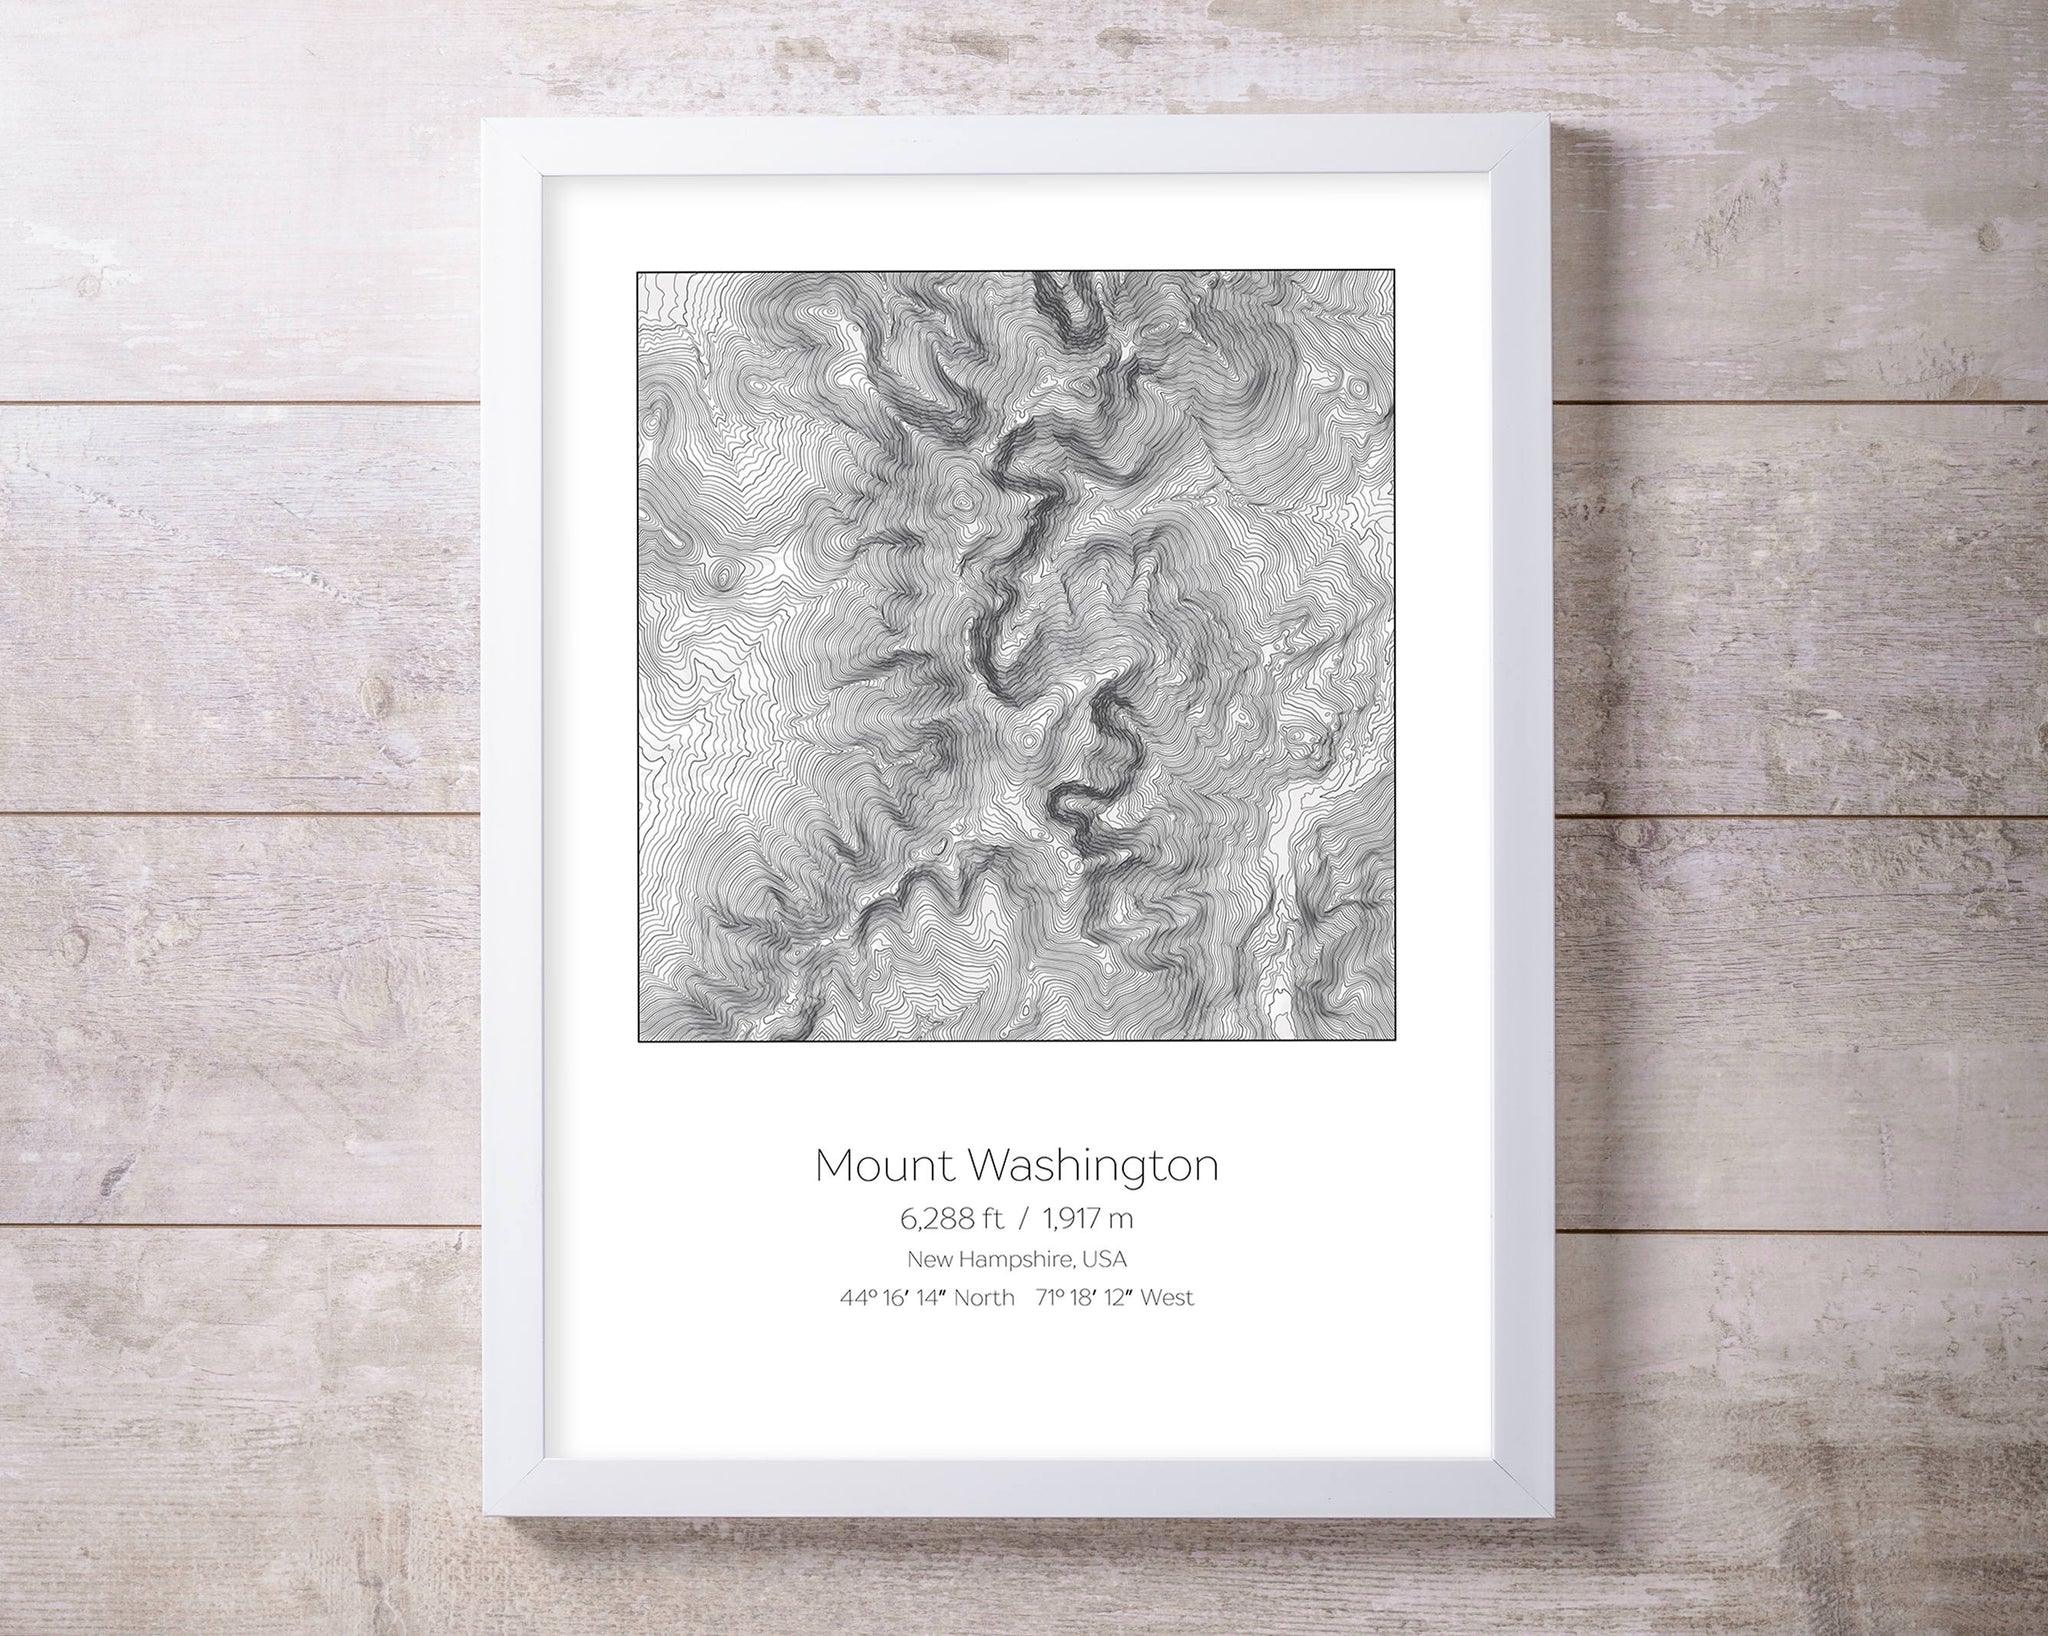 Mount Washington, New Hampshire Topography Elevation Print Wall Art